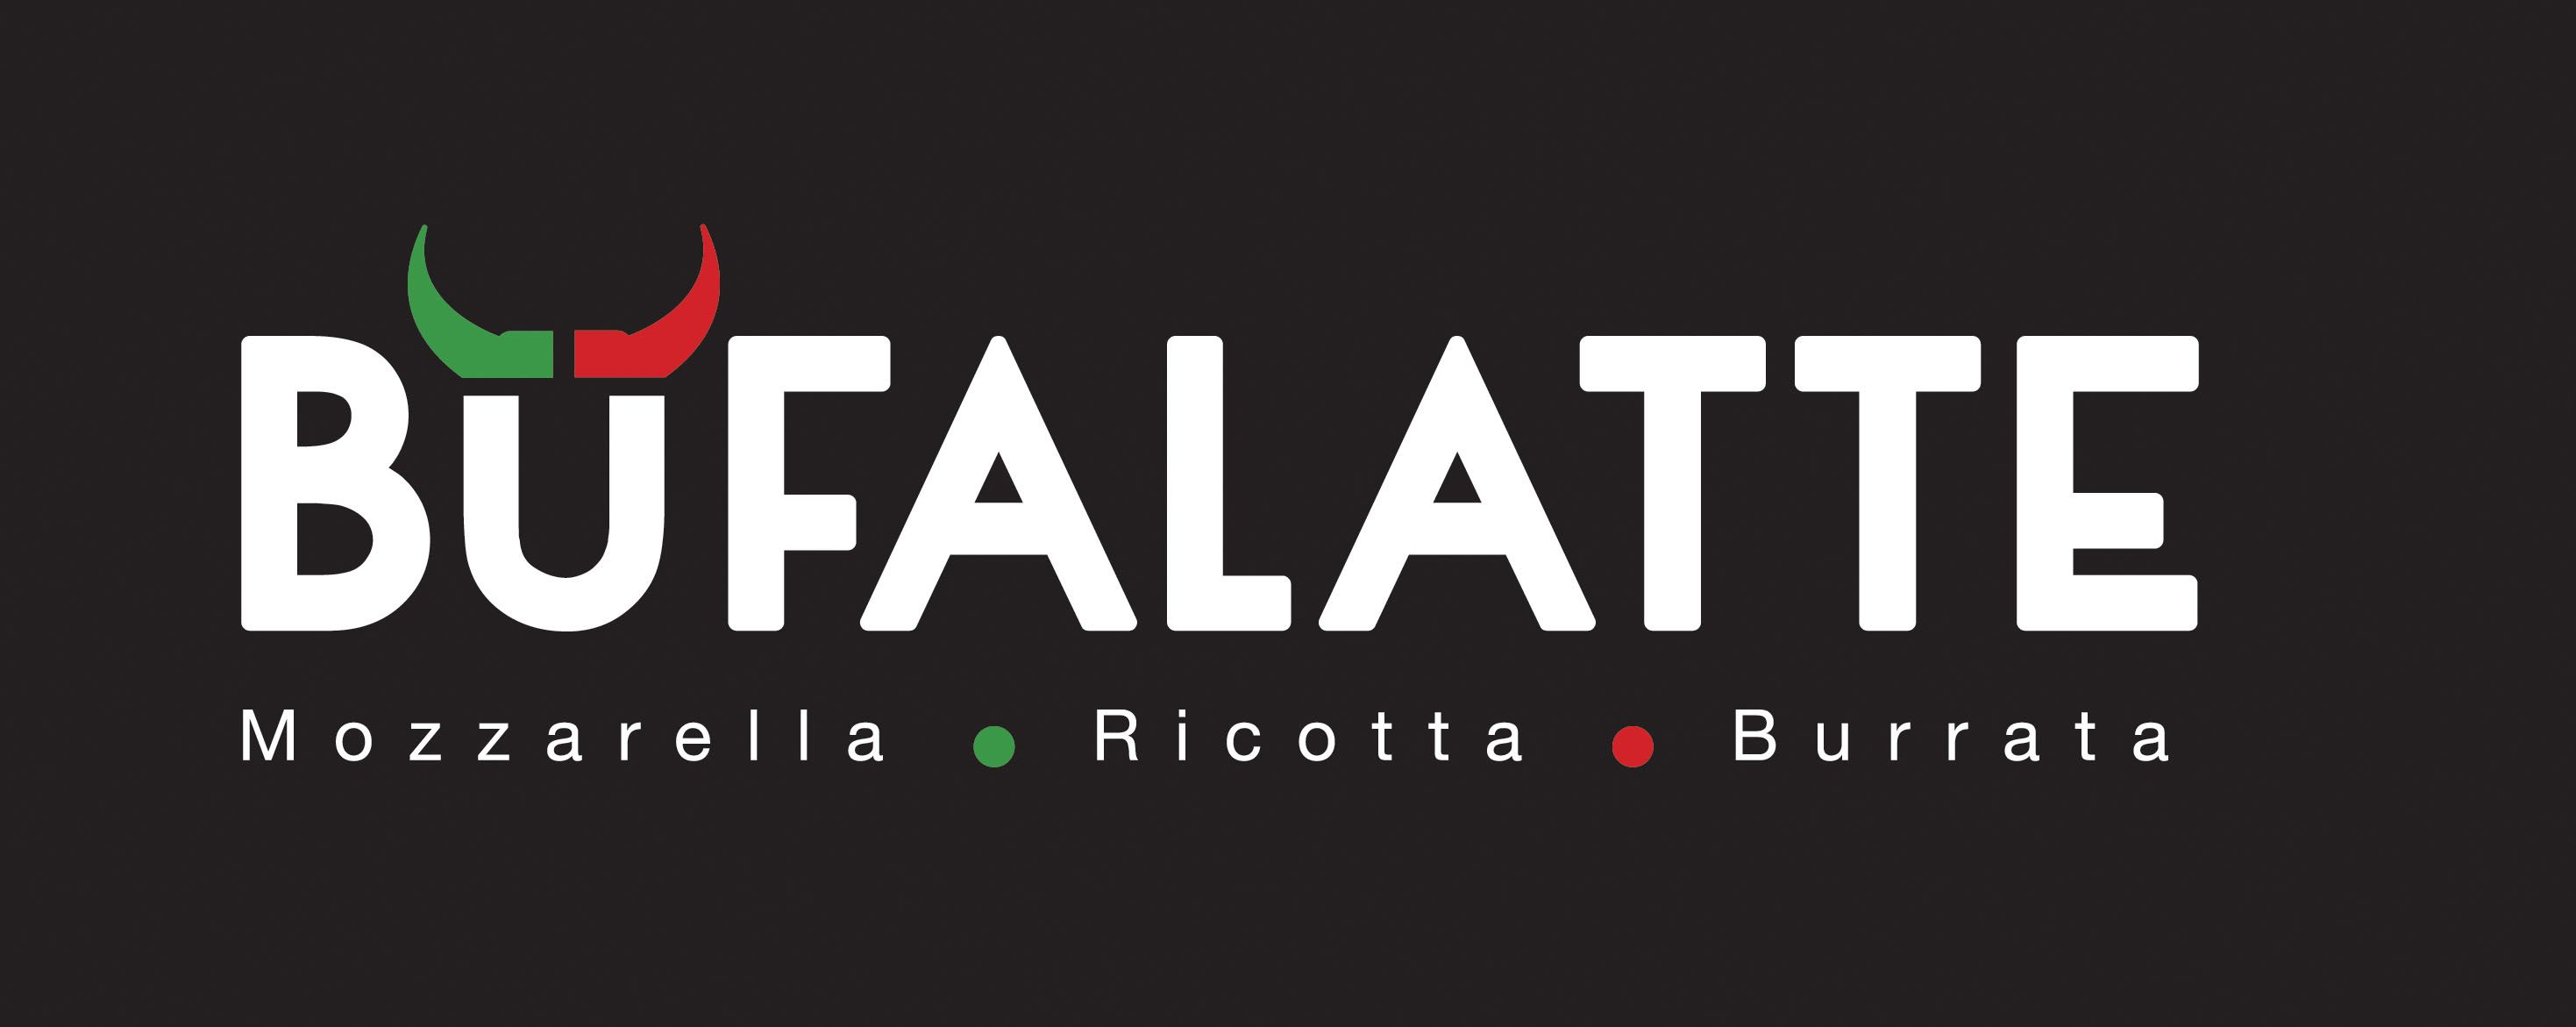 Affinity creates new Italian brand for client